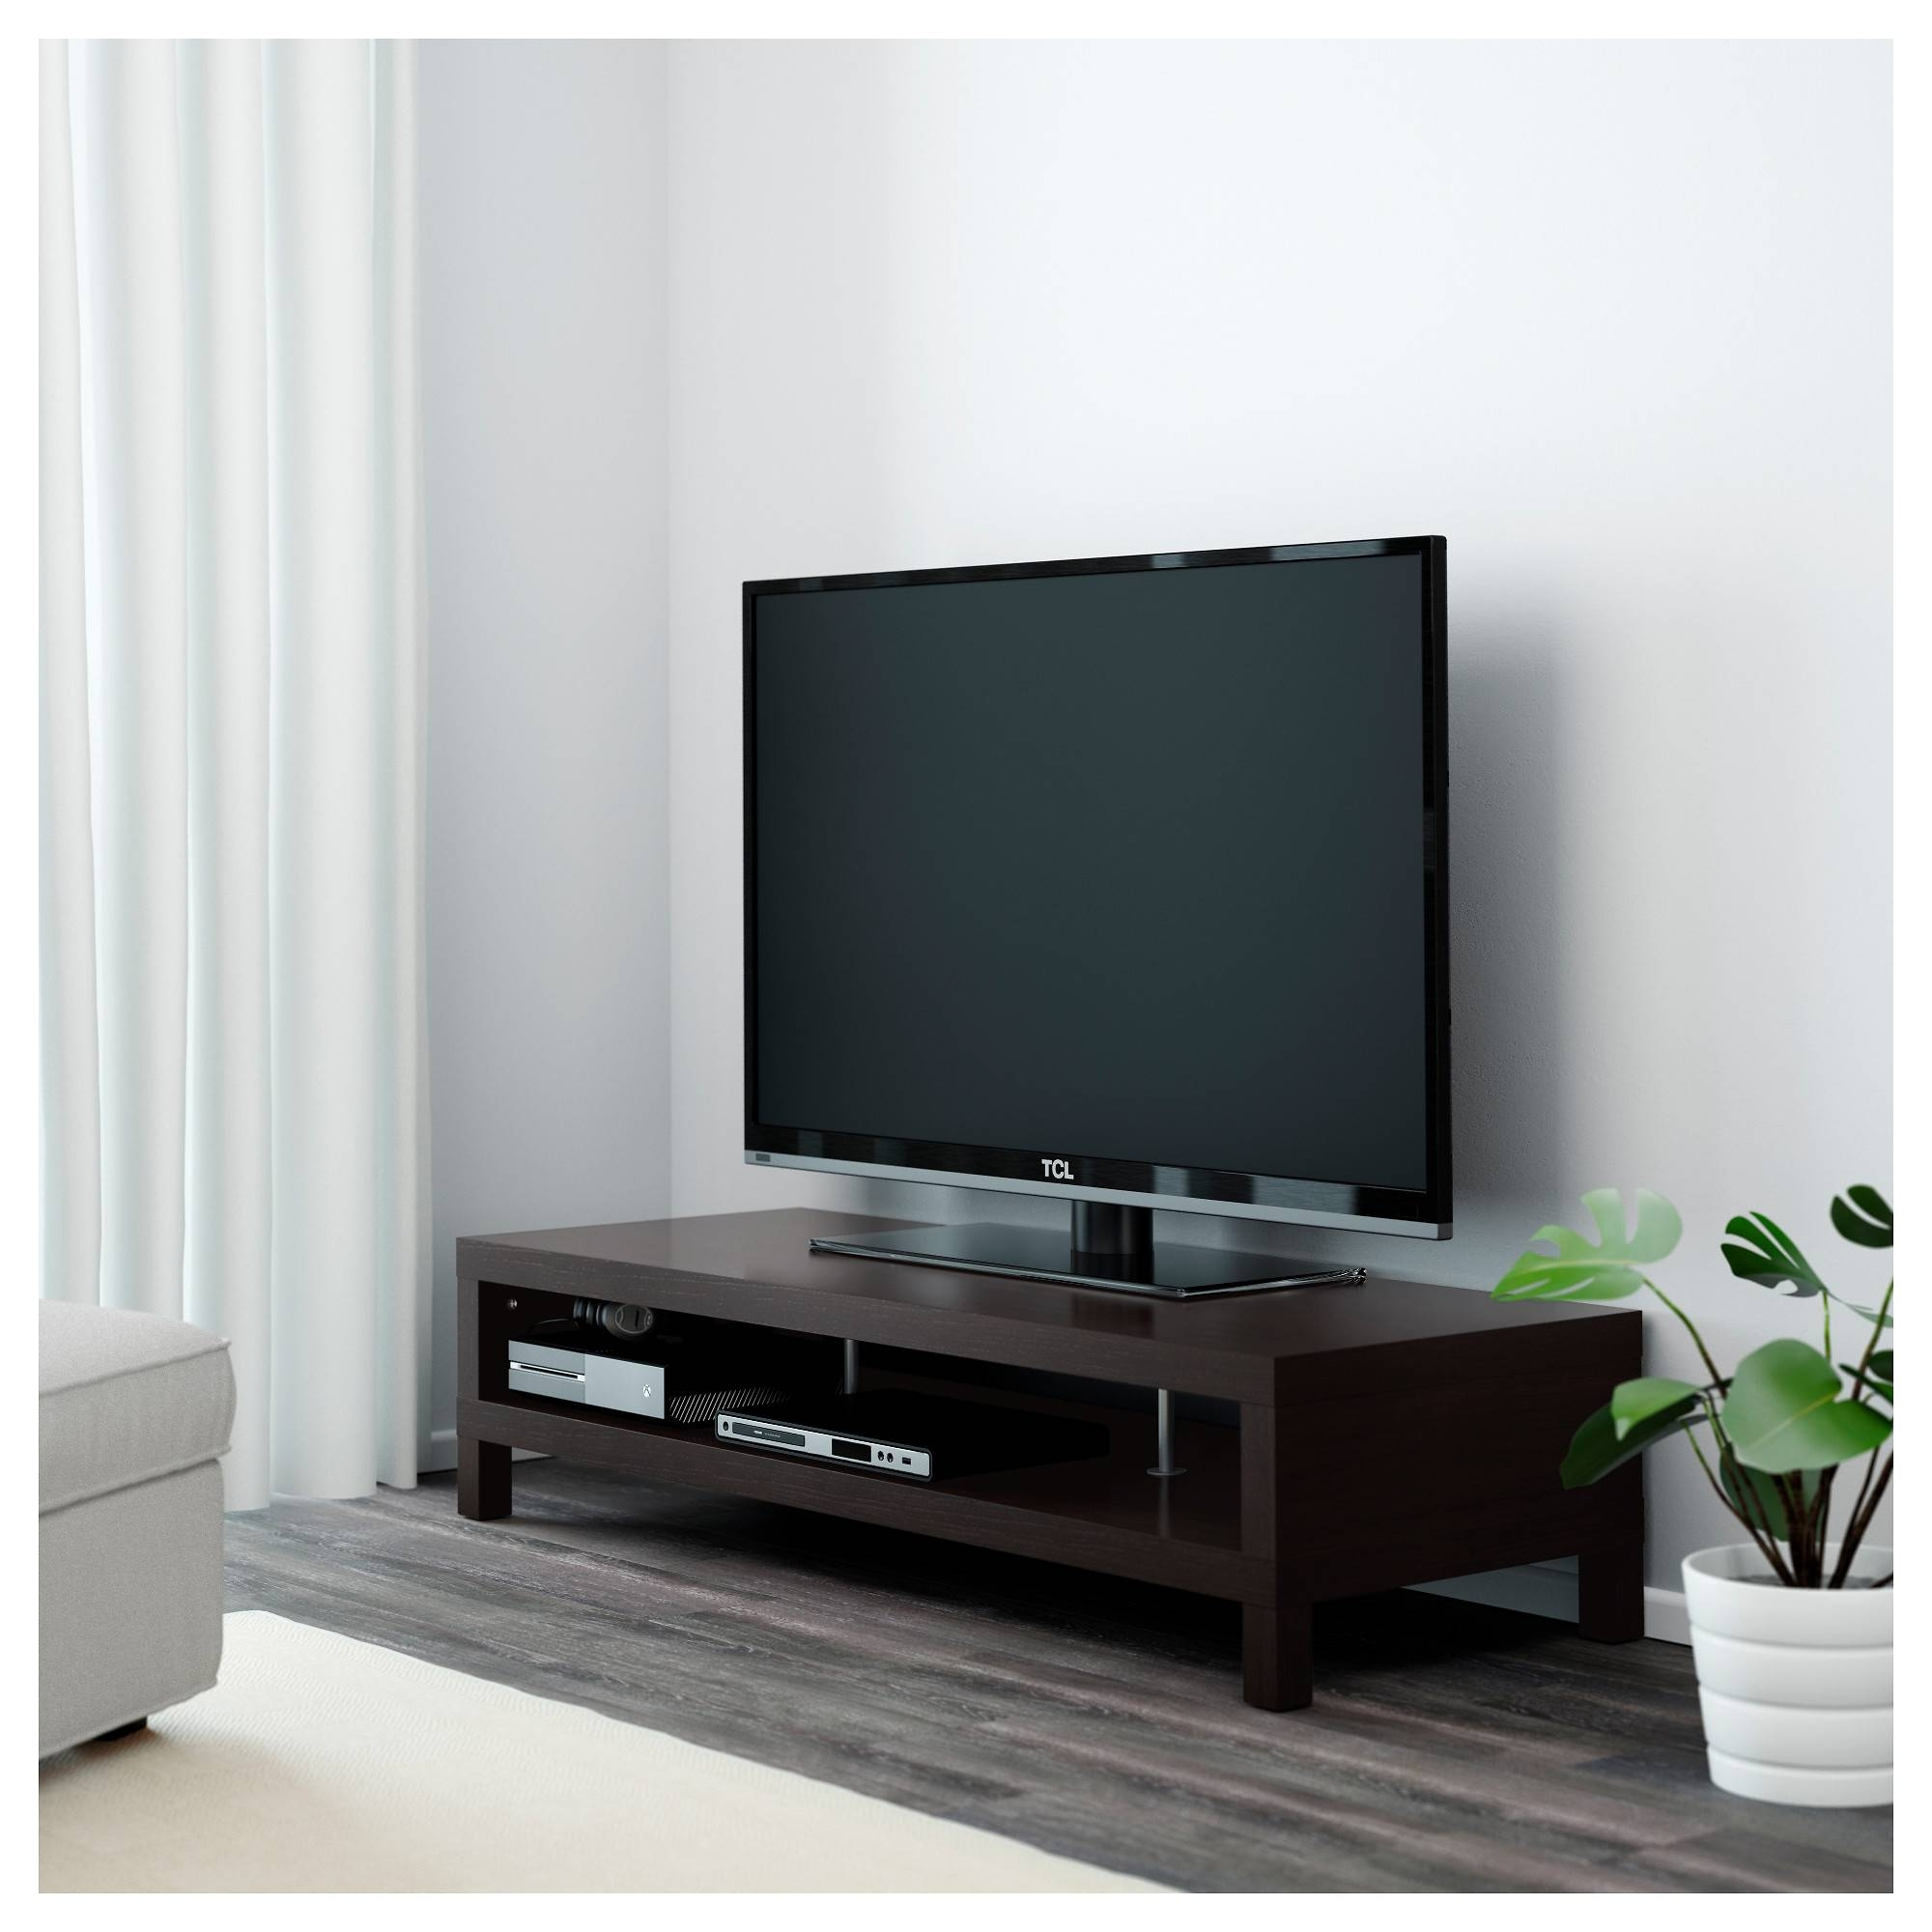 Lack Tv Unit - Ikea intended for Bench Tv Stands (Image 10 of 15)